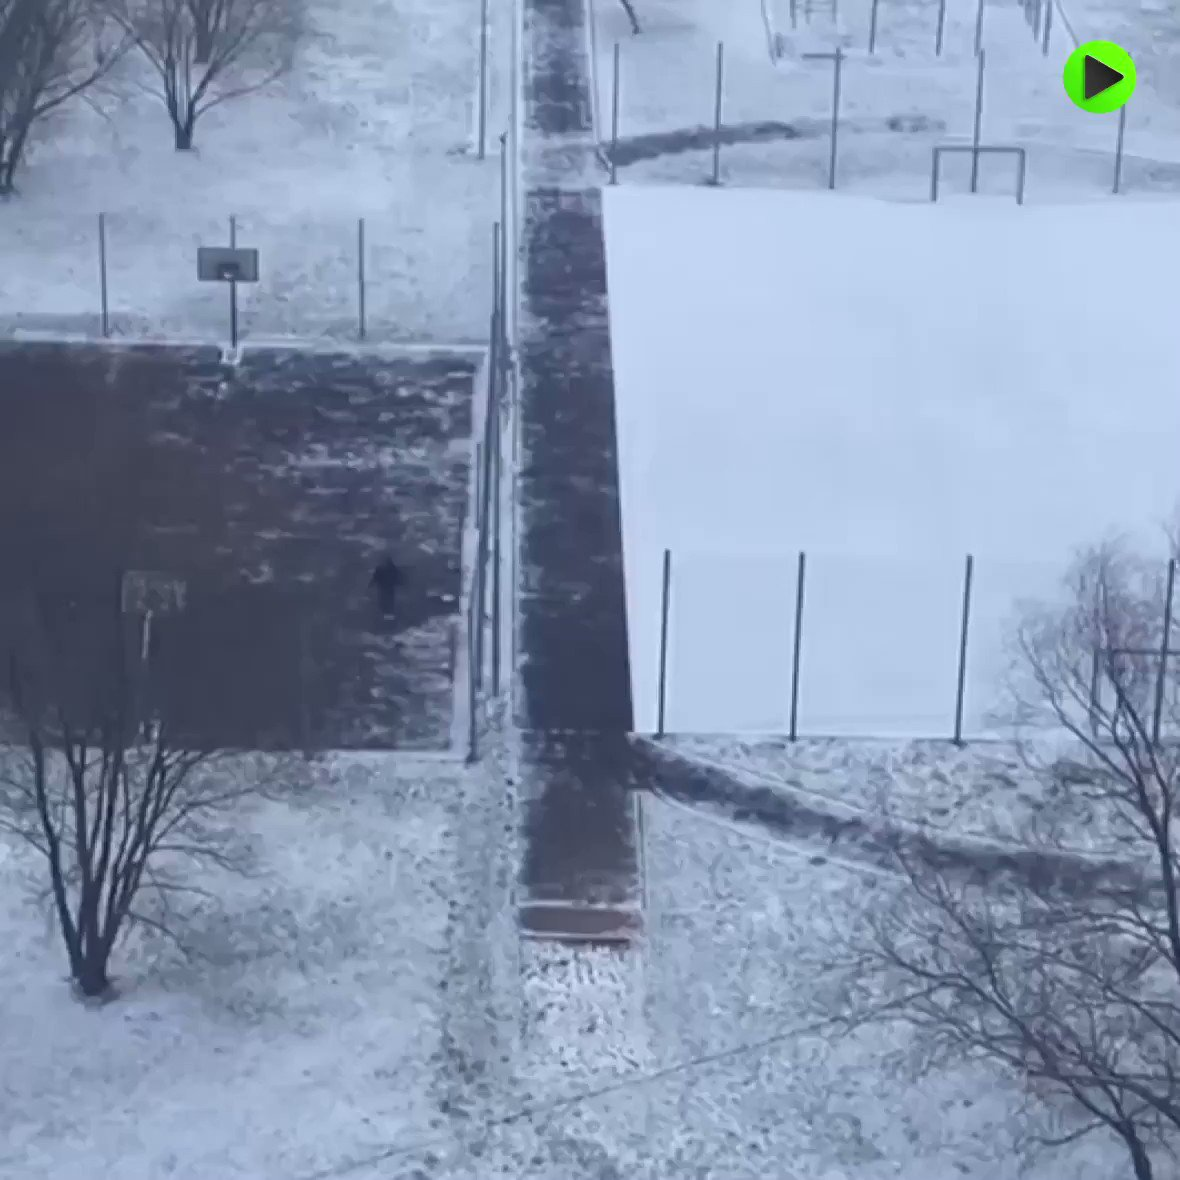 Spring was just here, what happened with #Moscow?!!! pic.twitter.com/zeJoUFdR9H